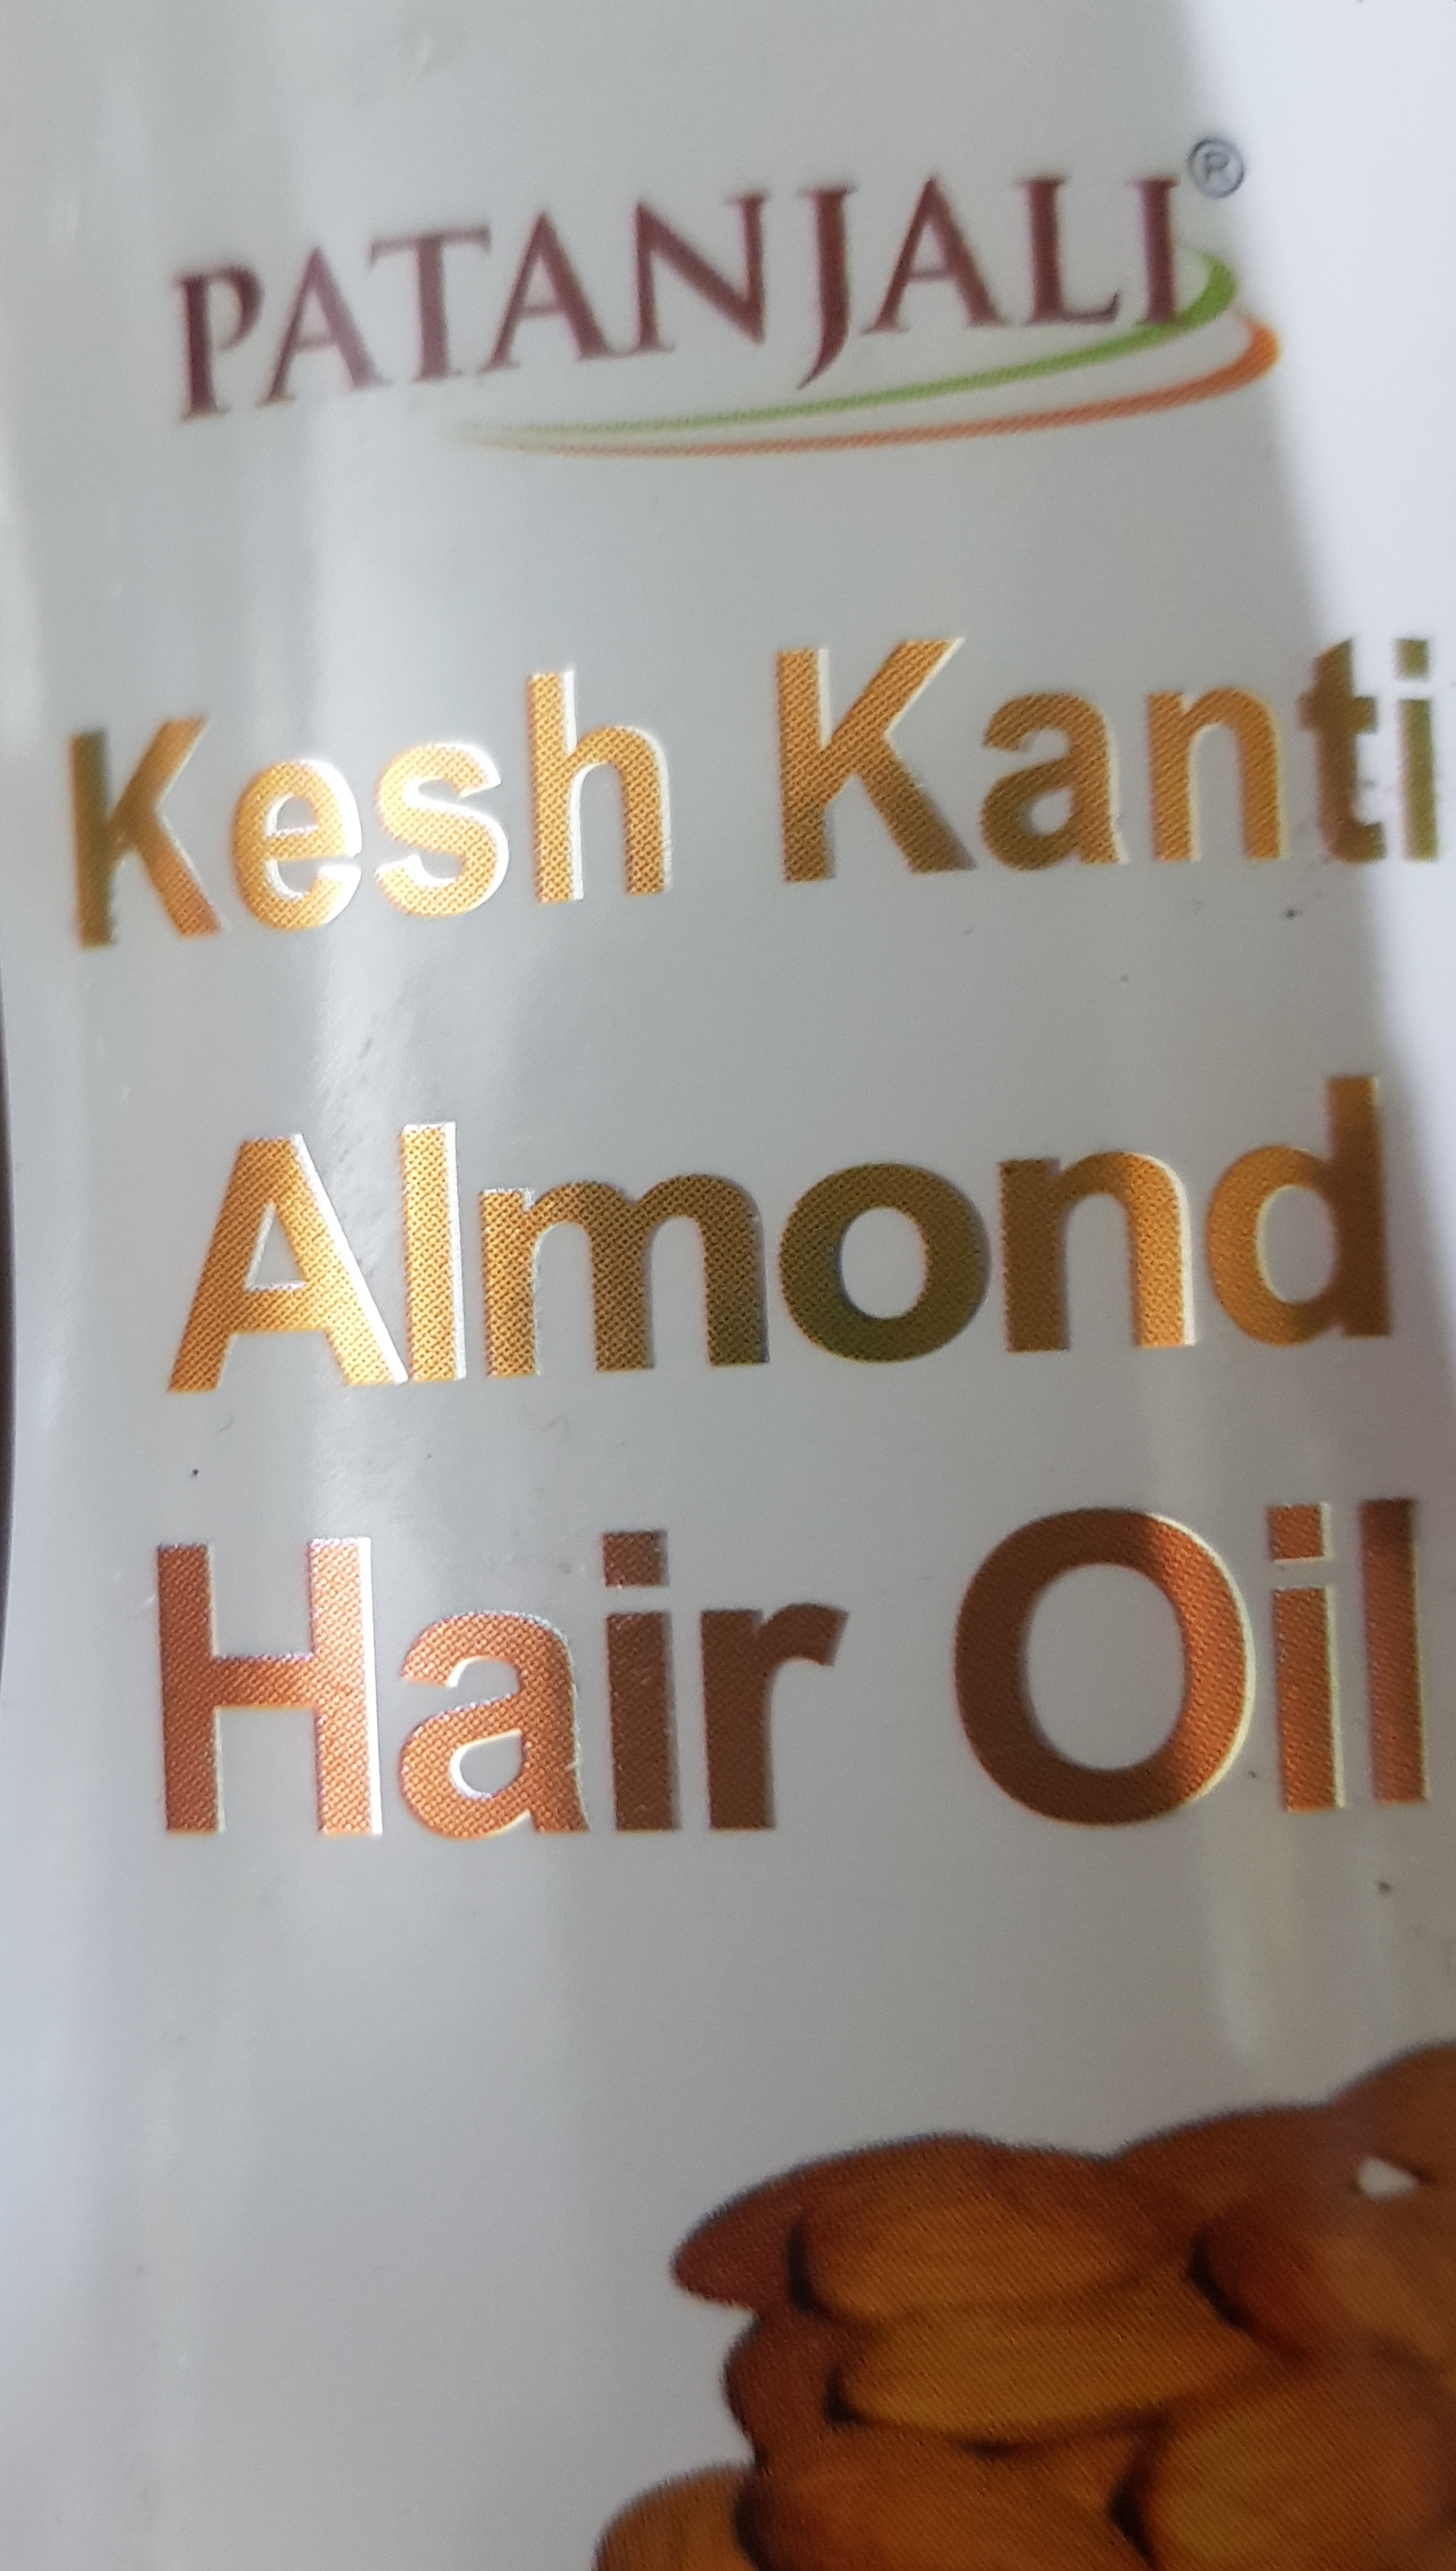 Patanjali Kesh Kanti Almond Hair Oil-Strengthens Hair-By vaishali_0111